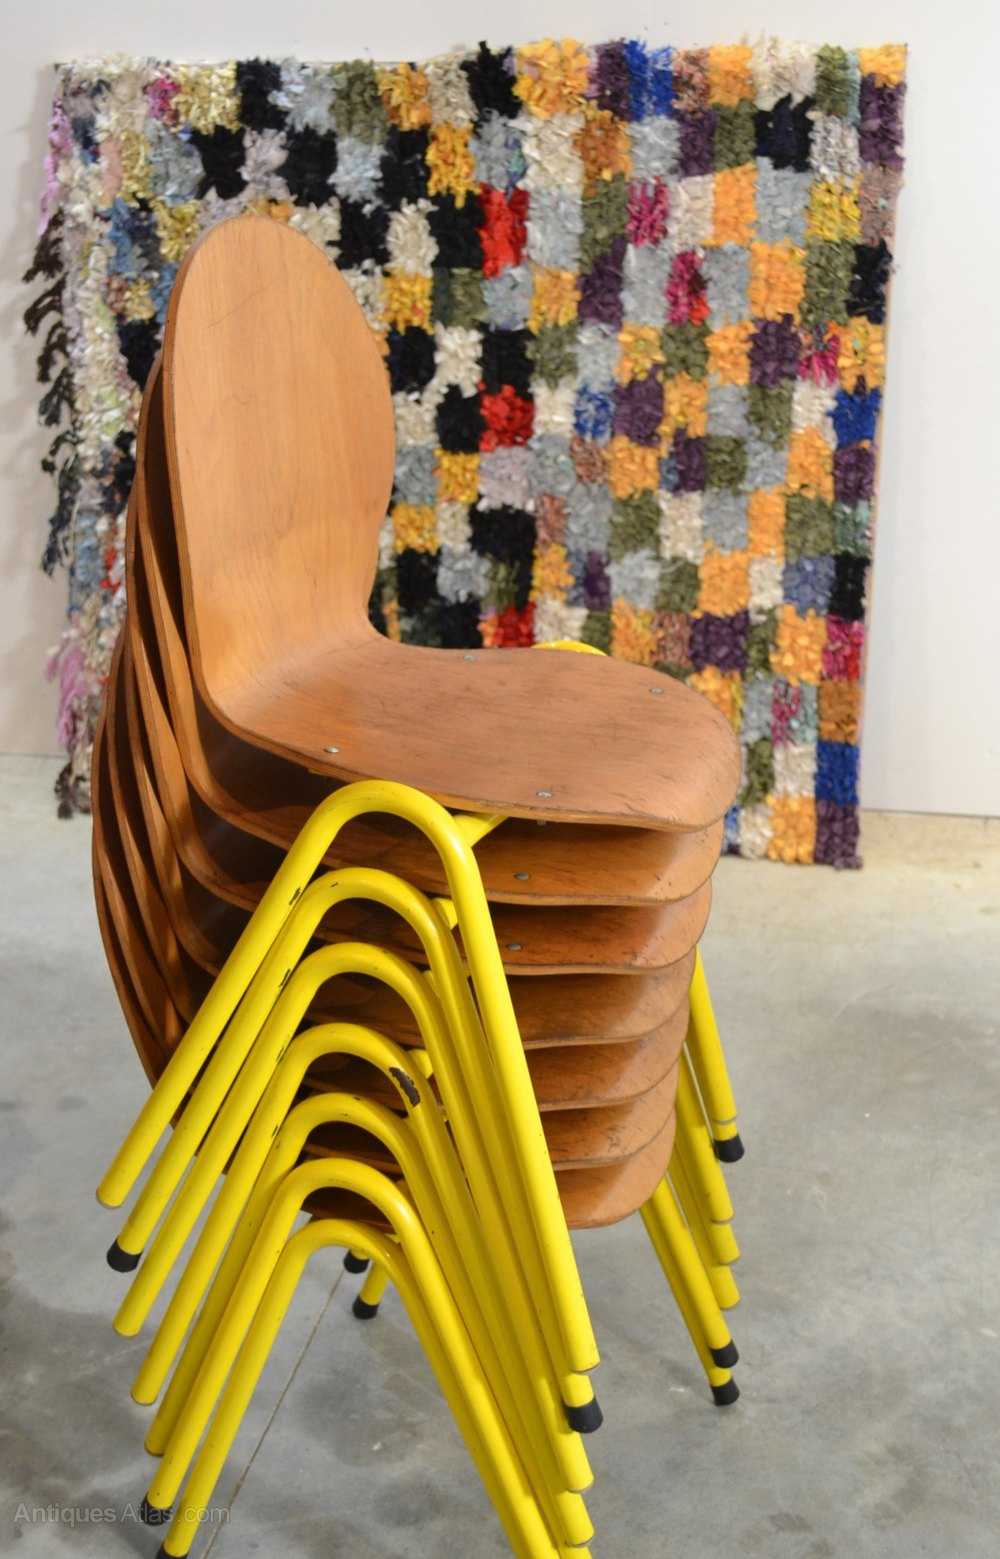 Antiques atlas yellow chairs 70s vintage for Vintage 70s chair